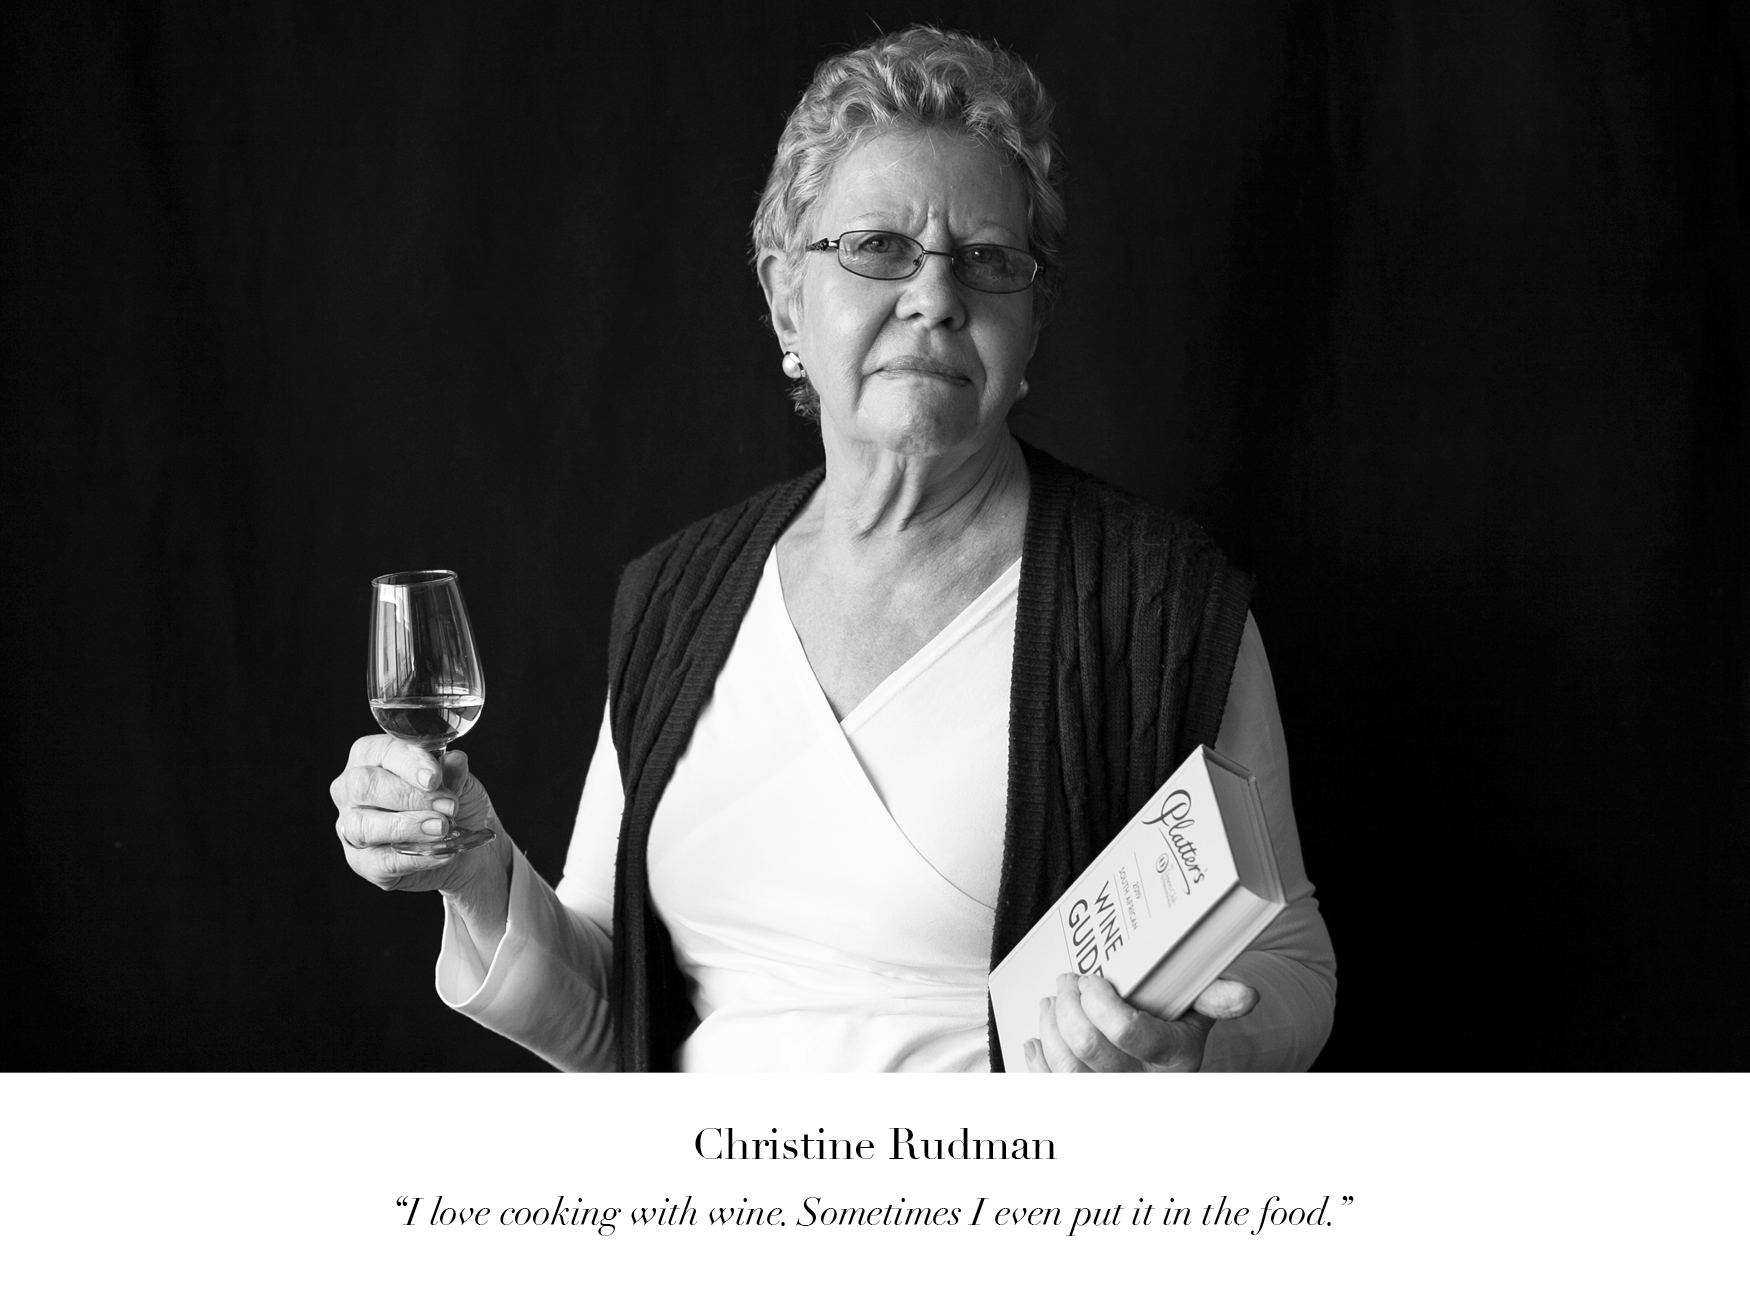 Christine Rudman Wine of the Month Club wine judge